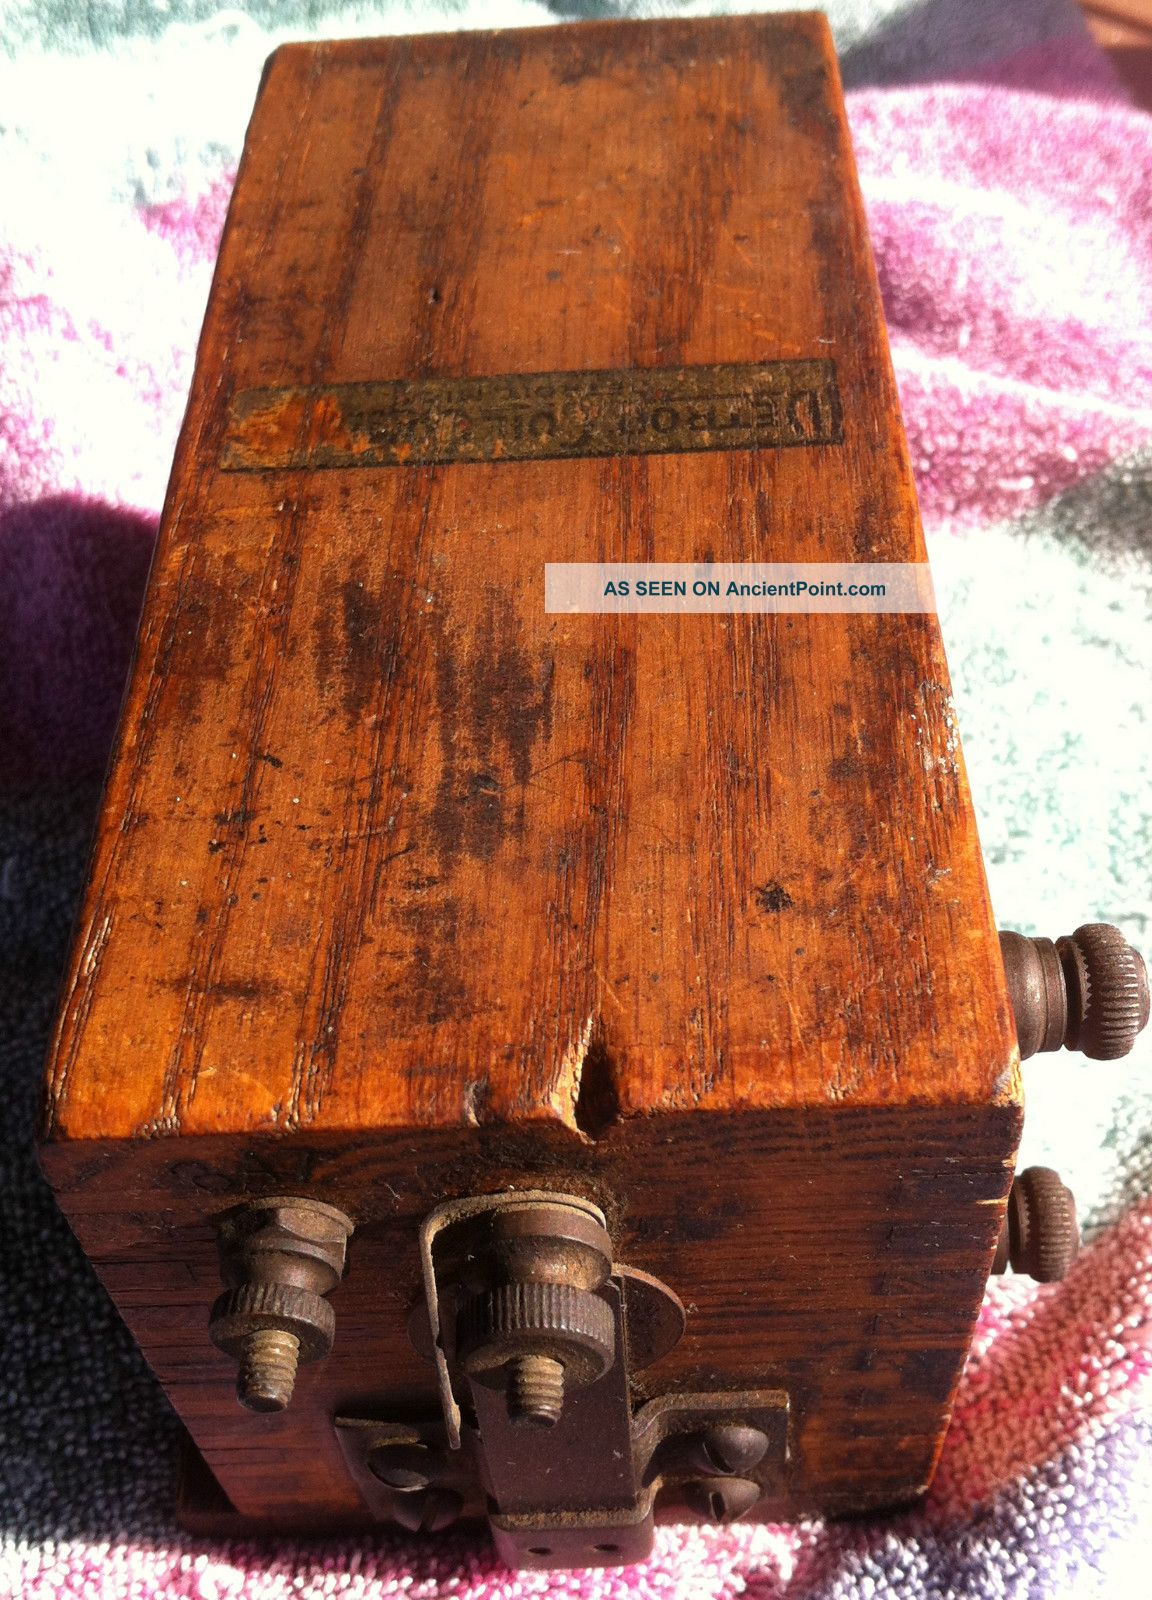 Vintage Detroit Coil Company Type L14 Oak Wood Buzz Box Michigan Telegraphs photo